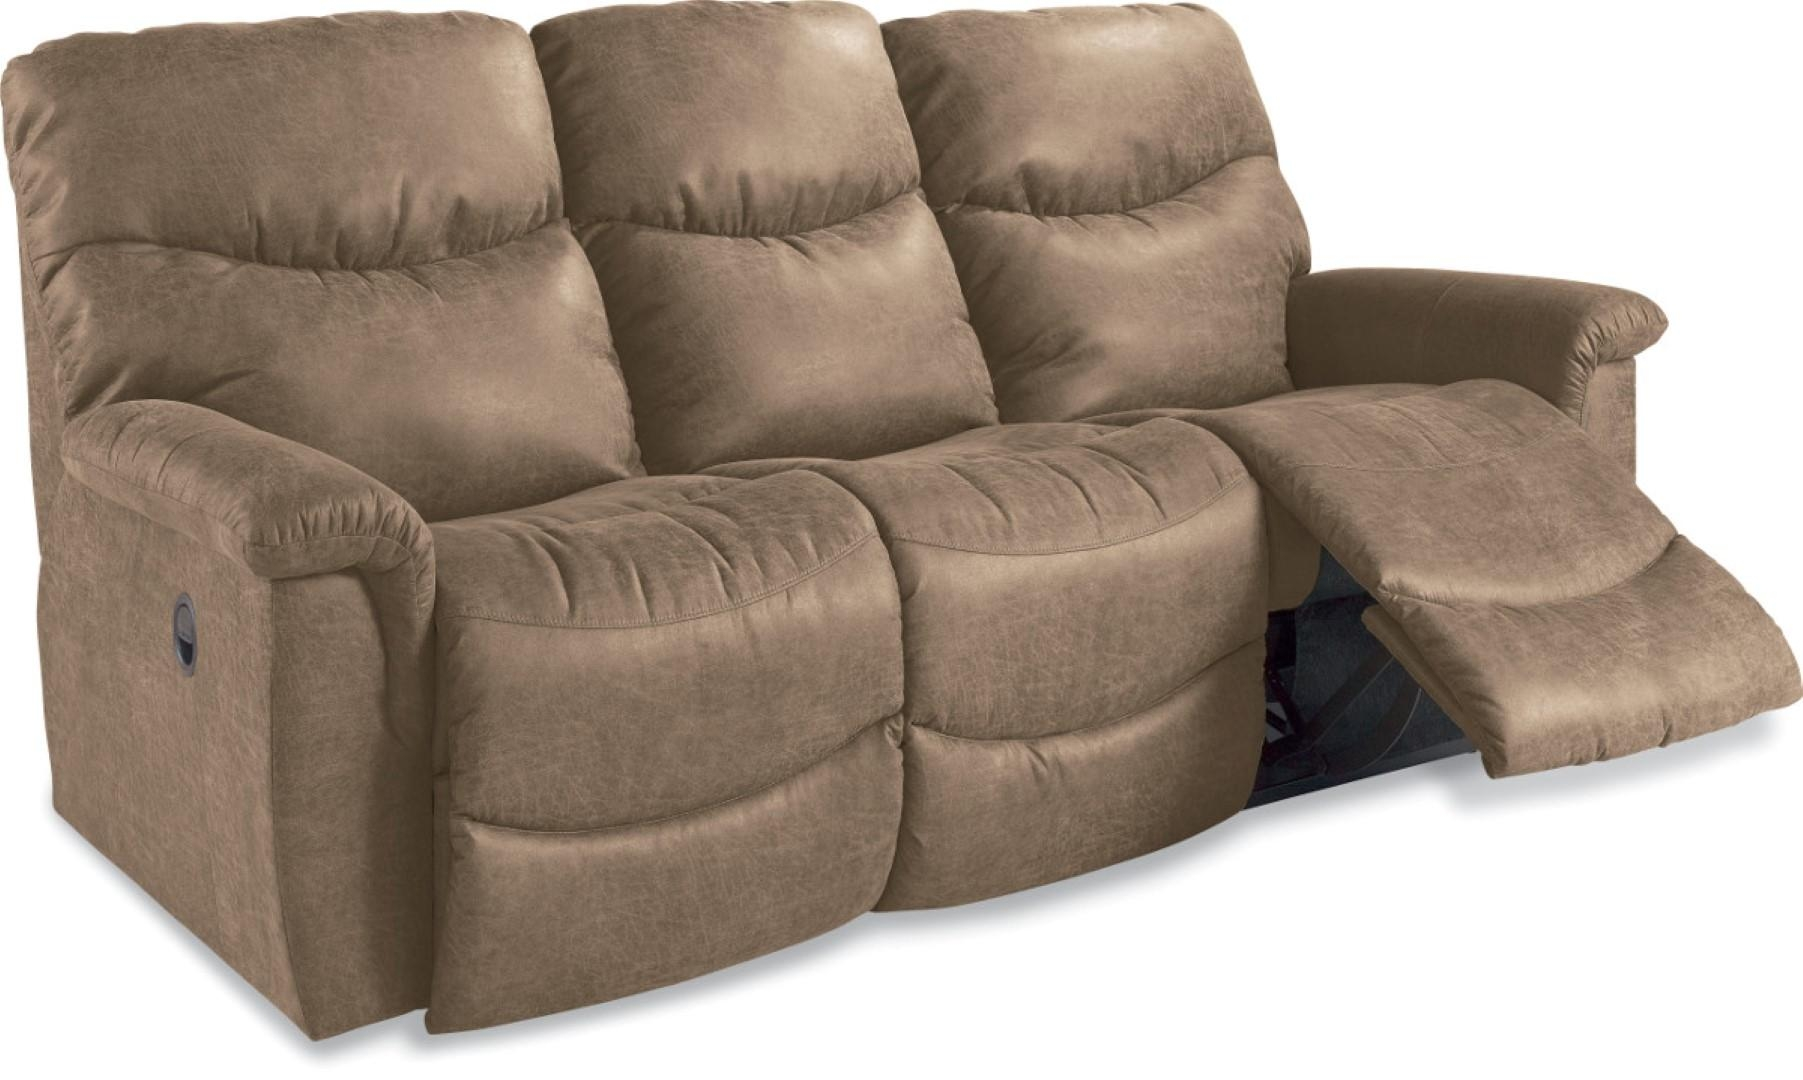 Sofas Center : Dreaded Lazy Boy Sofa Image Concept Lazboy William Regarding Lazy Boy Sofas (Image 14 of 20)